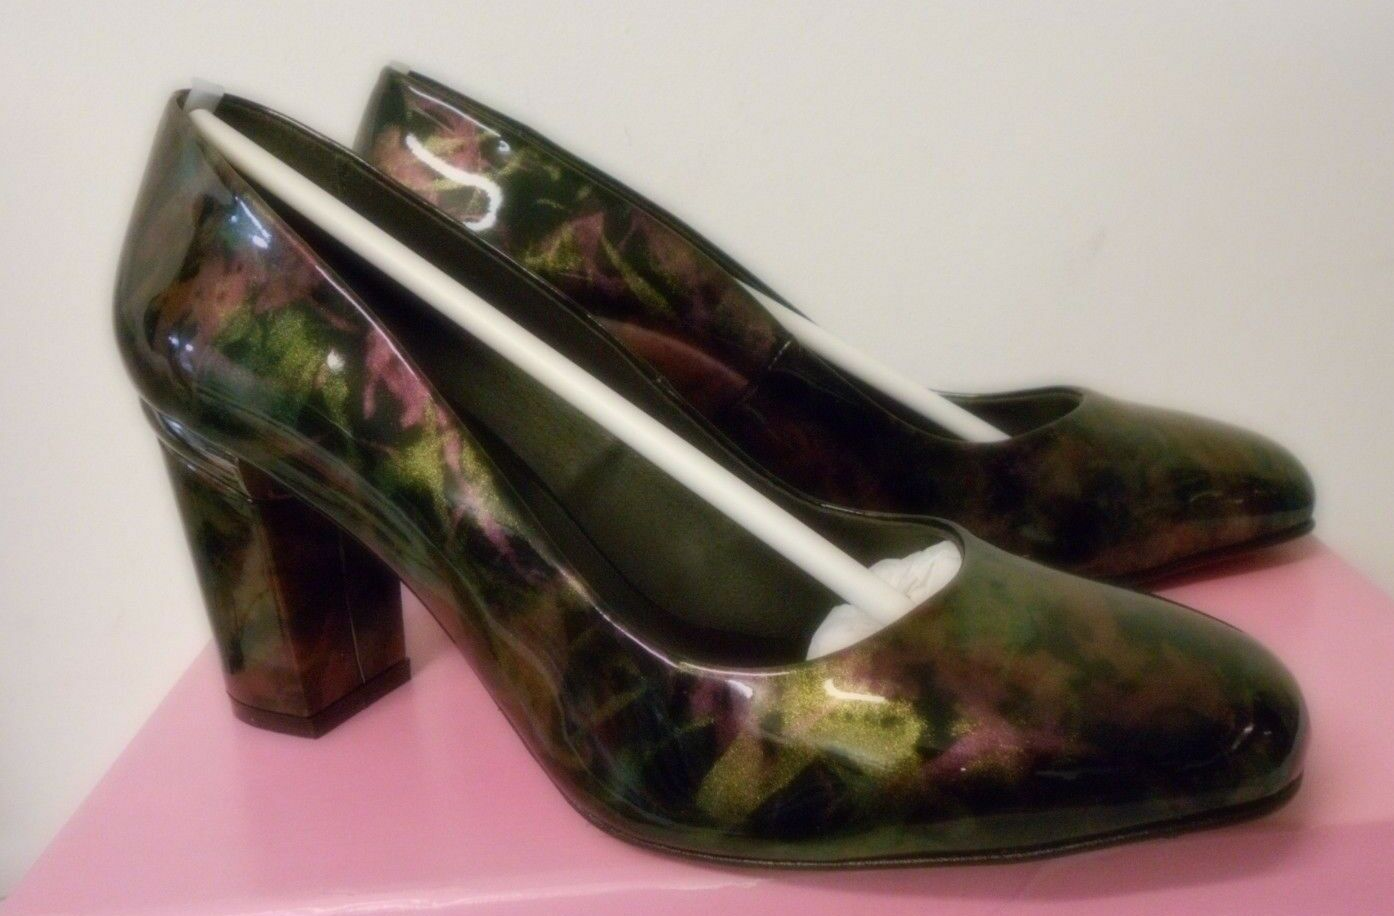 Chaussures Roberto Botella M17614 85 femme à talons taille 39